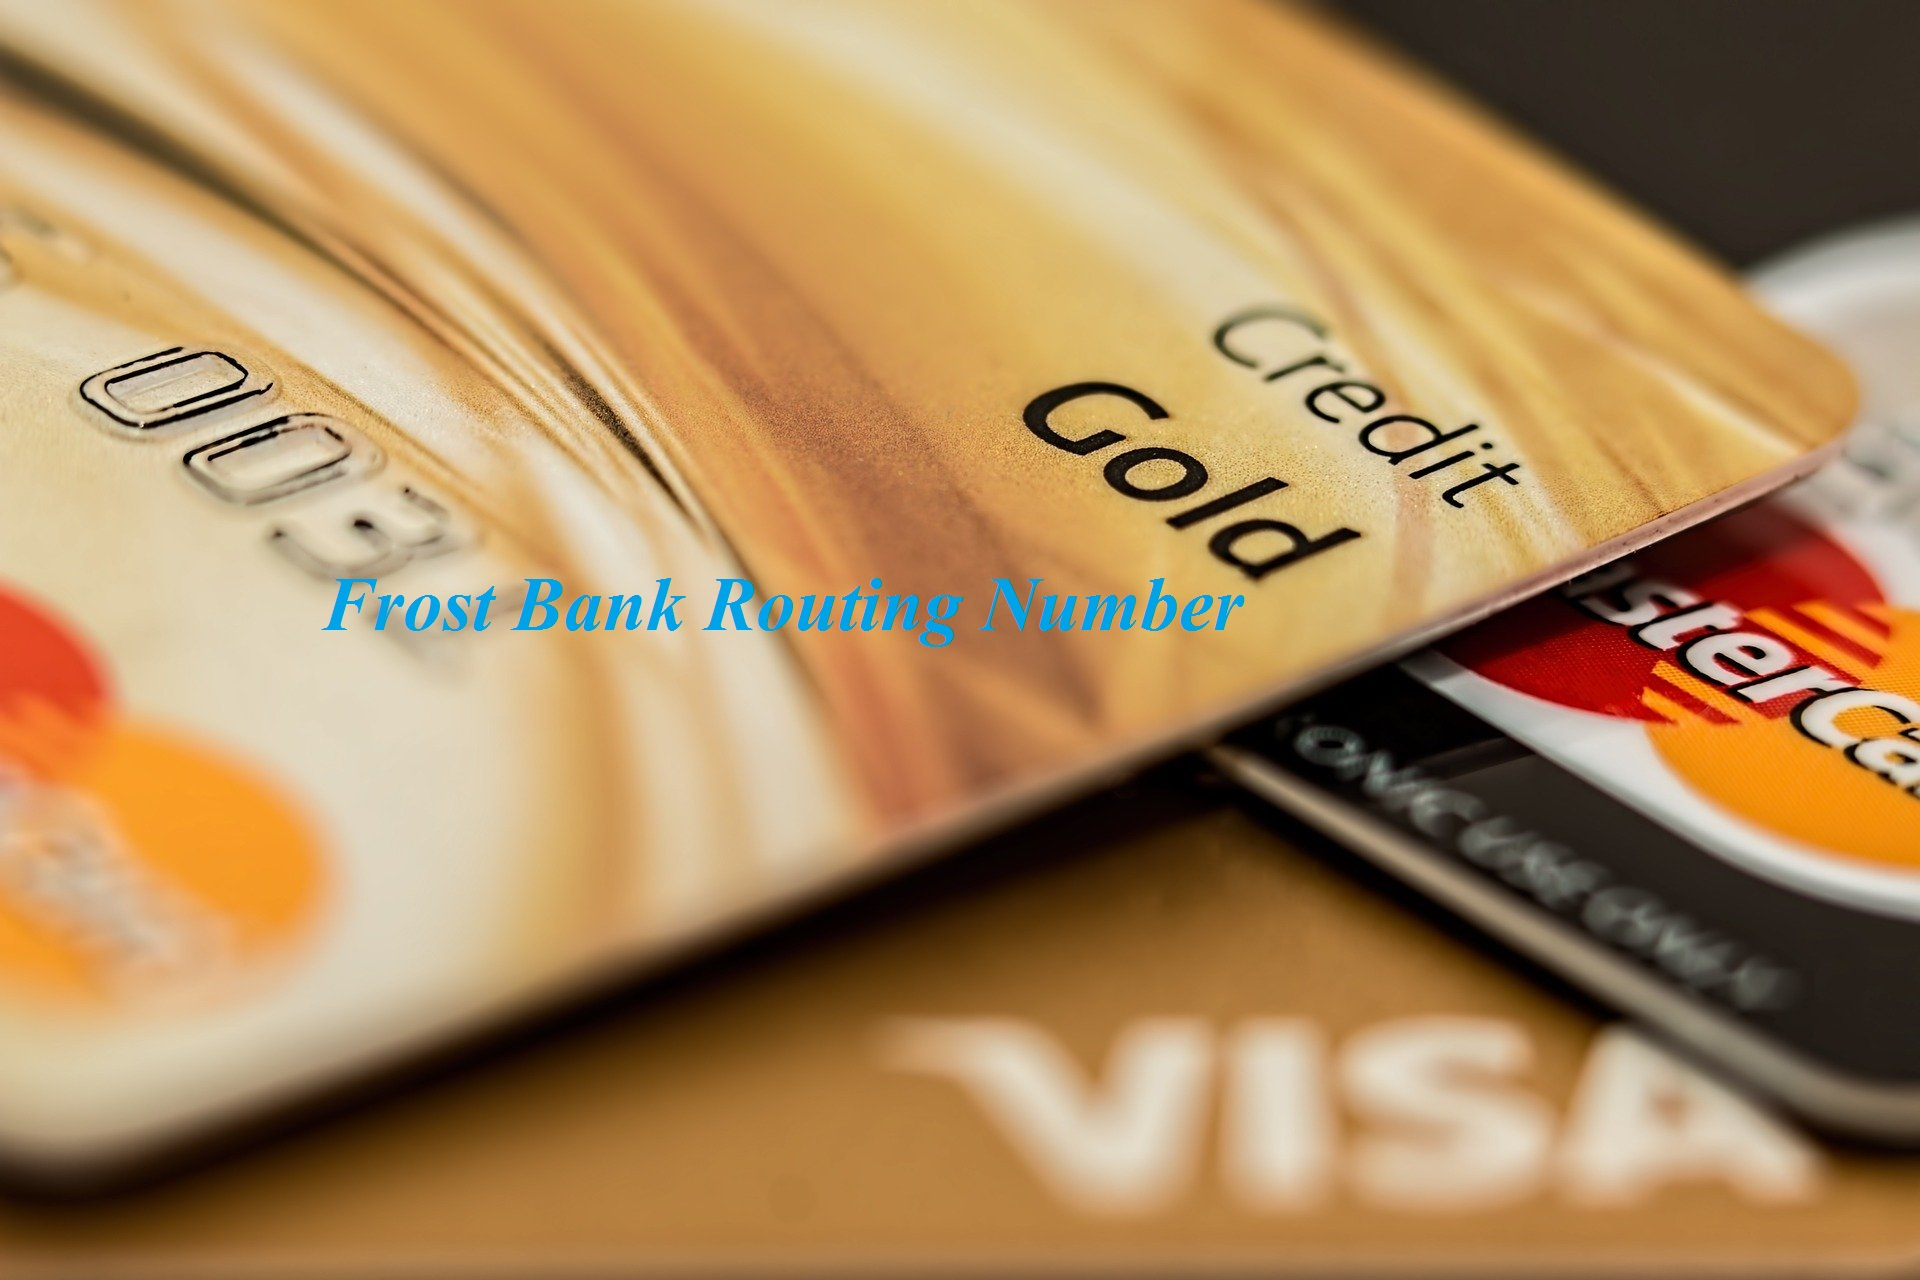 Frost Bank Routing Number